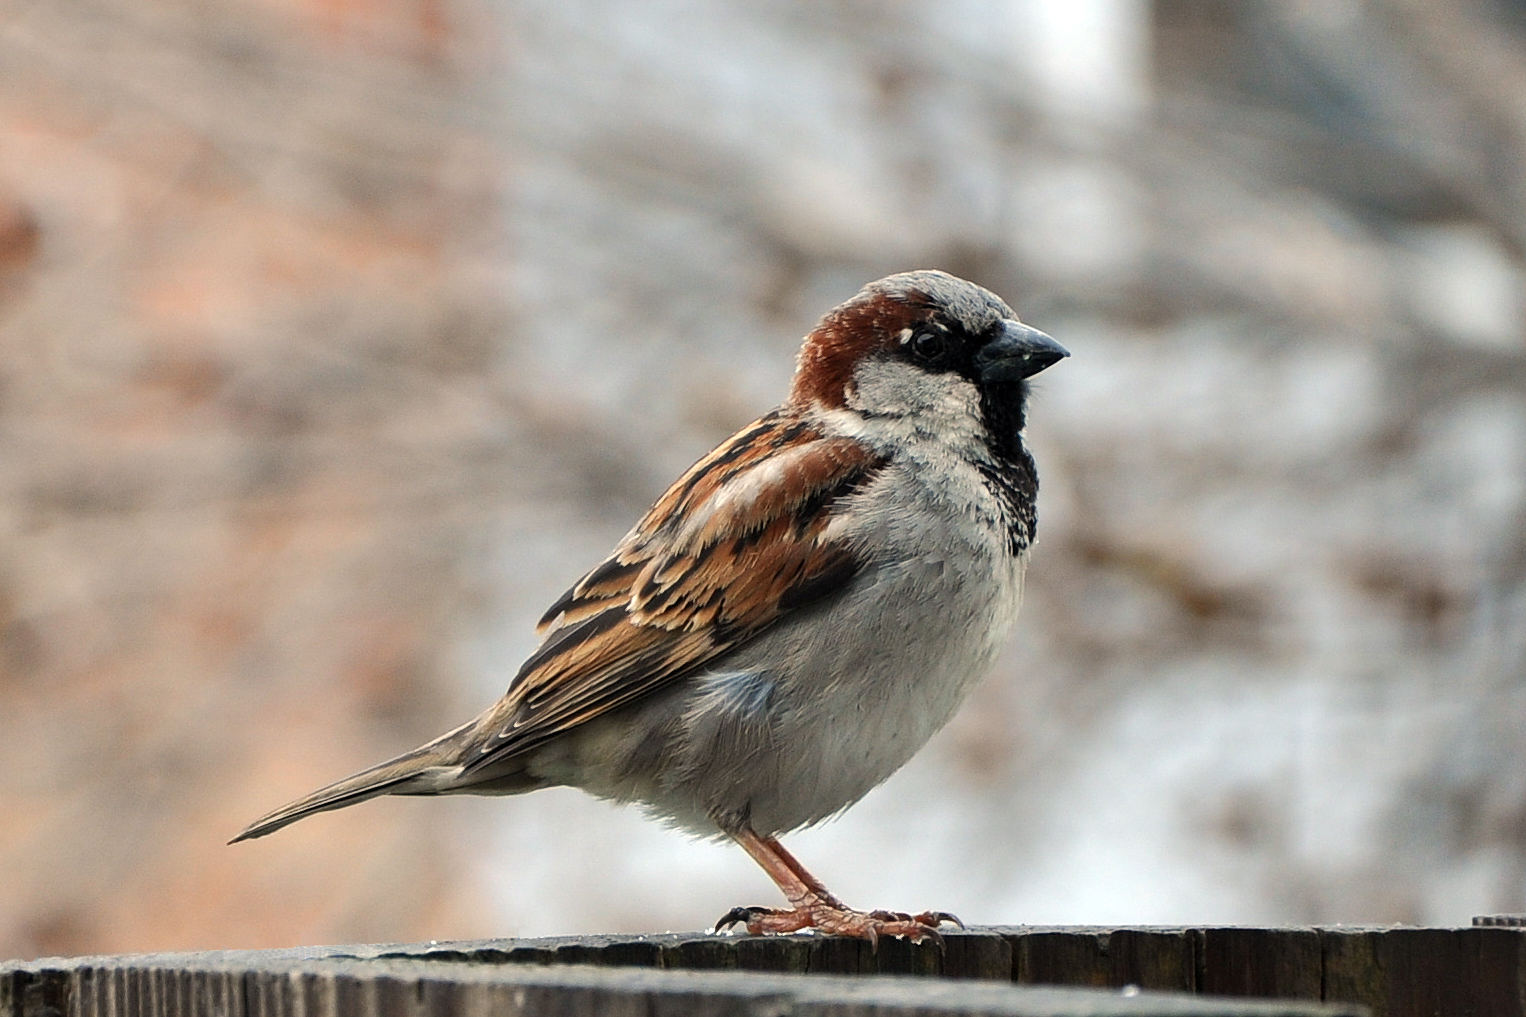 Pictures of house sparrows